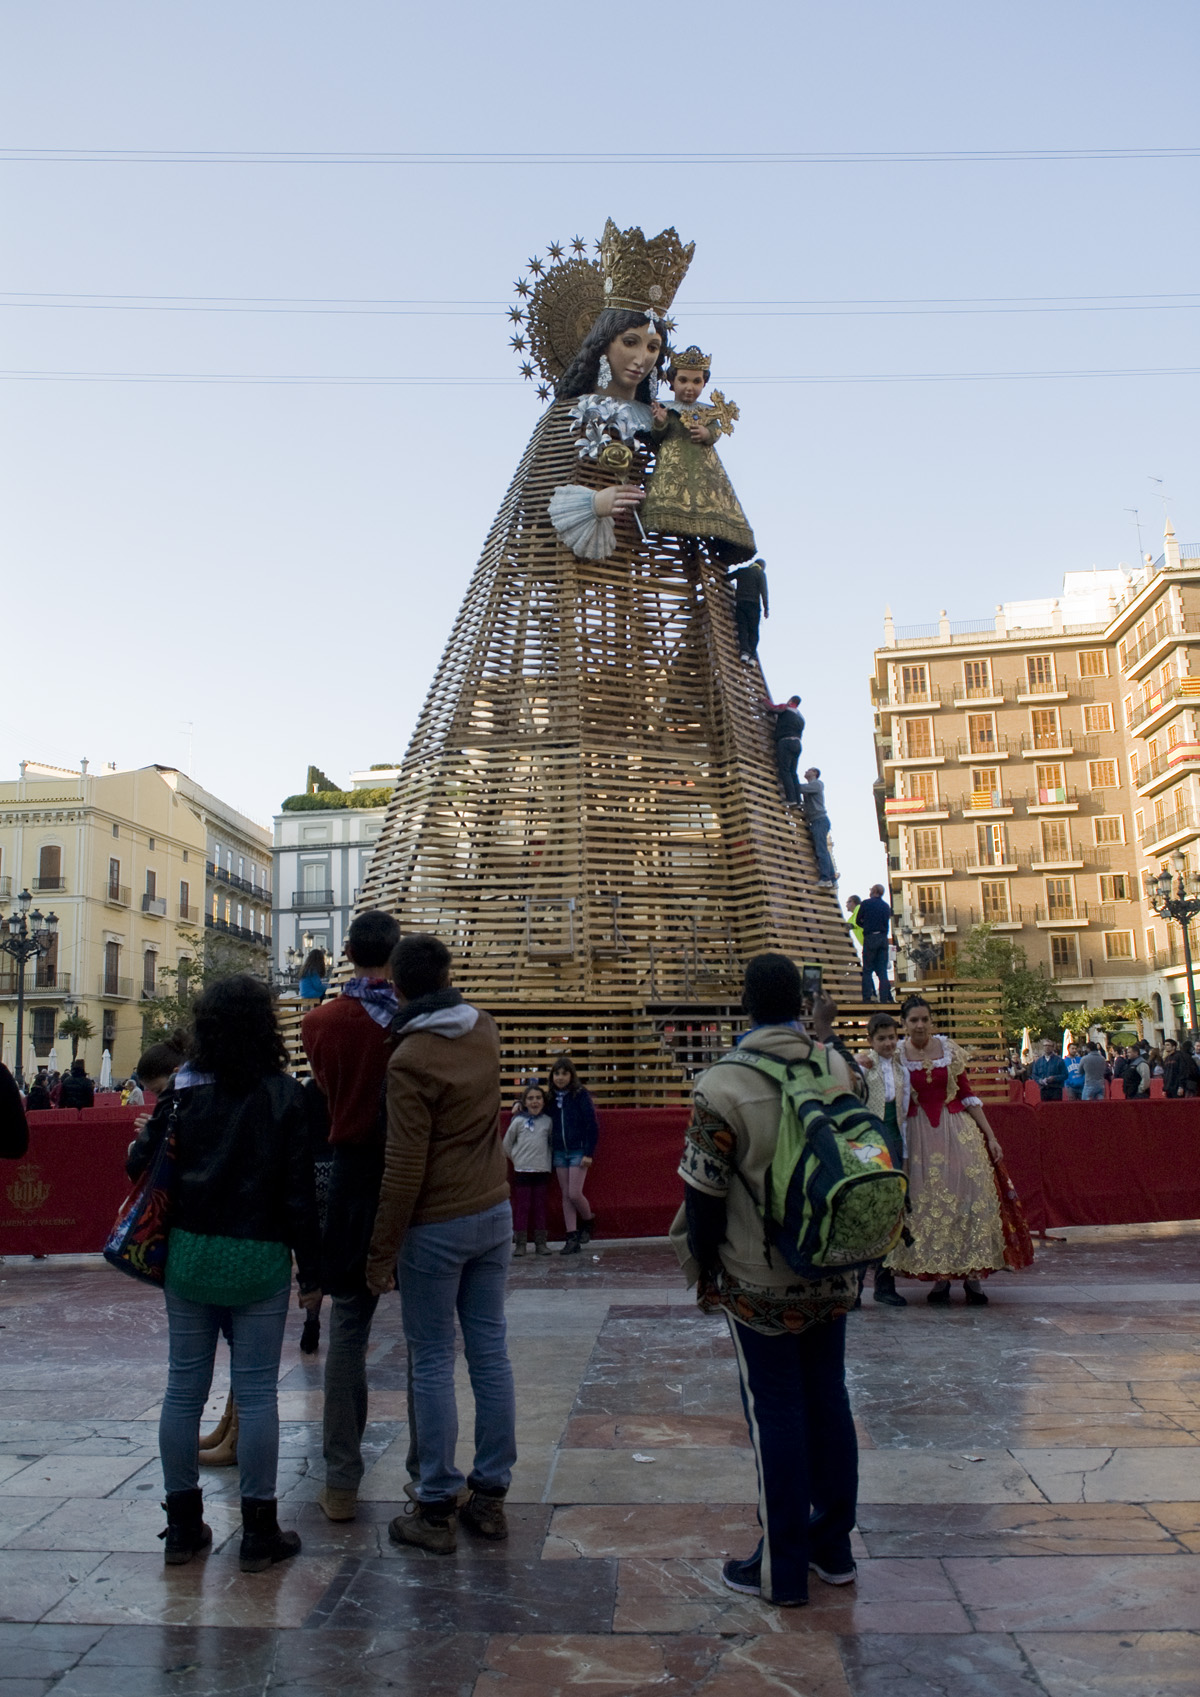 A great wooden structure depicting the Virgin Mary holding baby Jesus is located in the city's oldest square. It's amajor focal point of the Fallas festivities, as for a couple of days falleras and falleros process from their neighborhoods to the square with bouquets of flowers. The flowers are placed throughout the wooden structure, creating a beautiful dress.